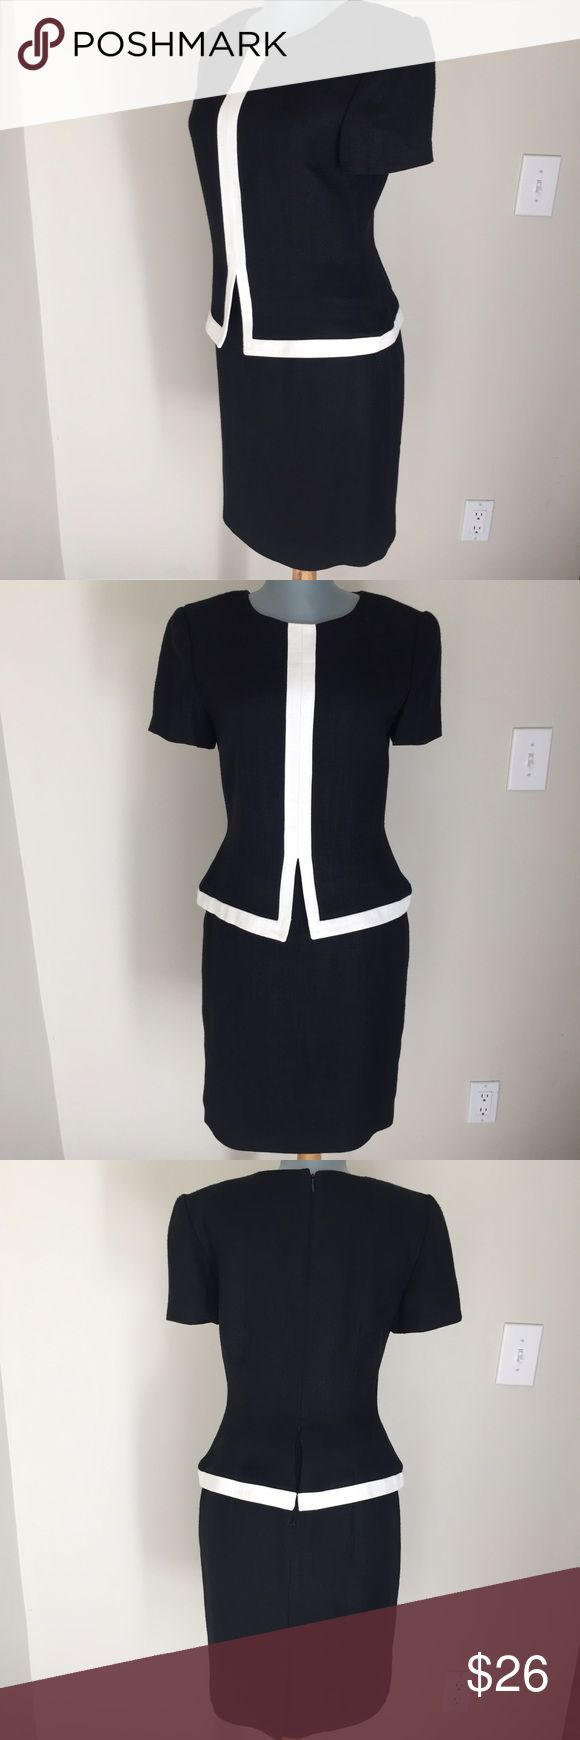 "Donna Ricco Black and White Dress Donna Ricco Black and White Dress. Gorgeous. Bust 36"". Waist 29"". Hips 36"". Waist to hem 22"". Good condition. Sophisticated and smart. Donna Ricco Dresses"